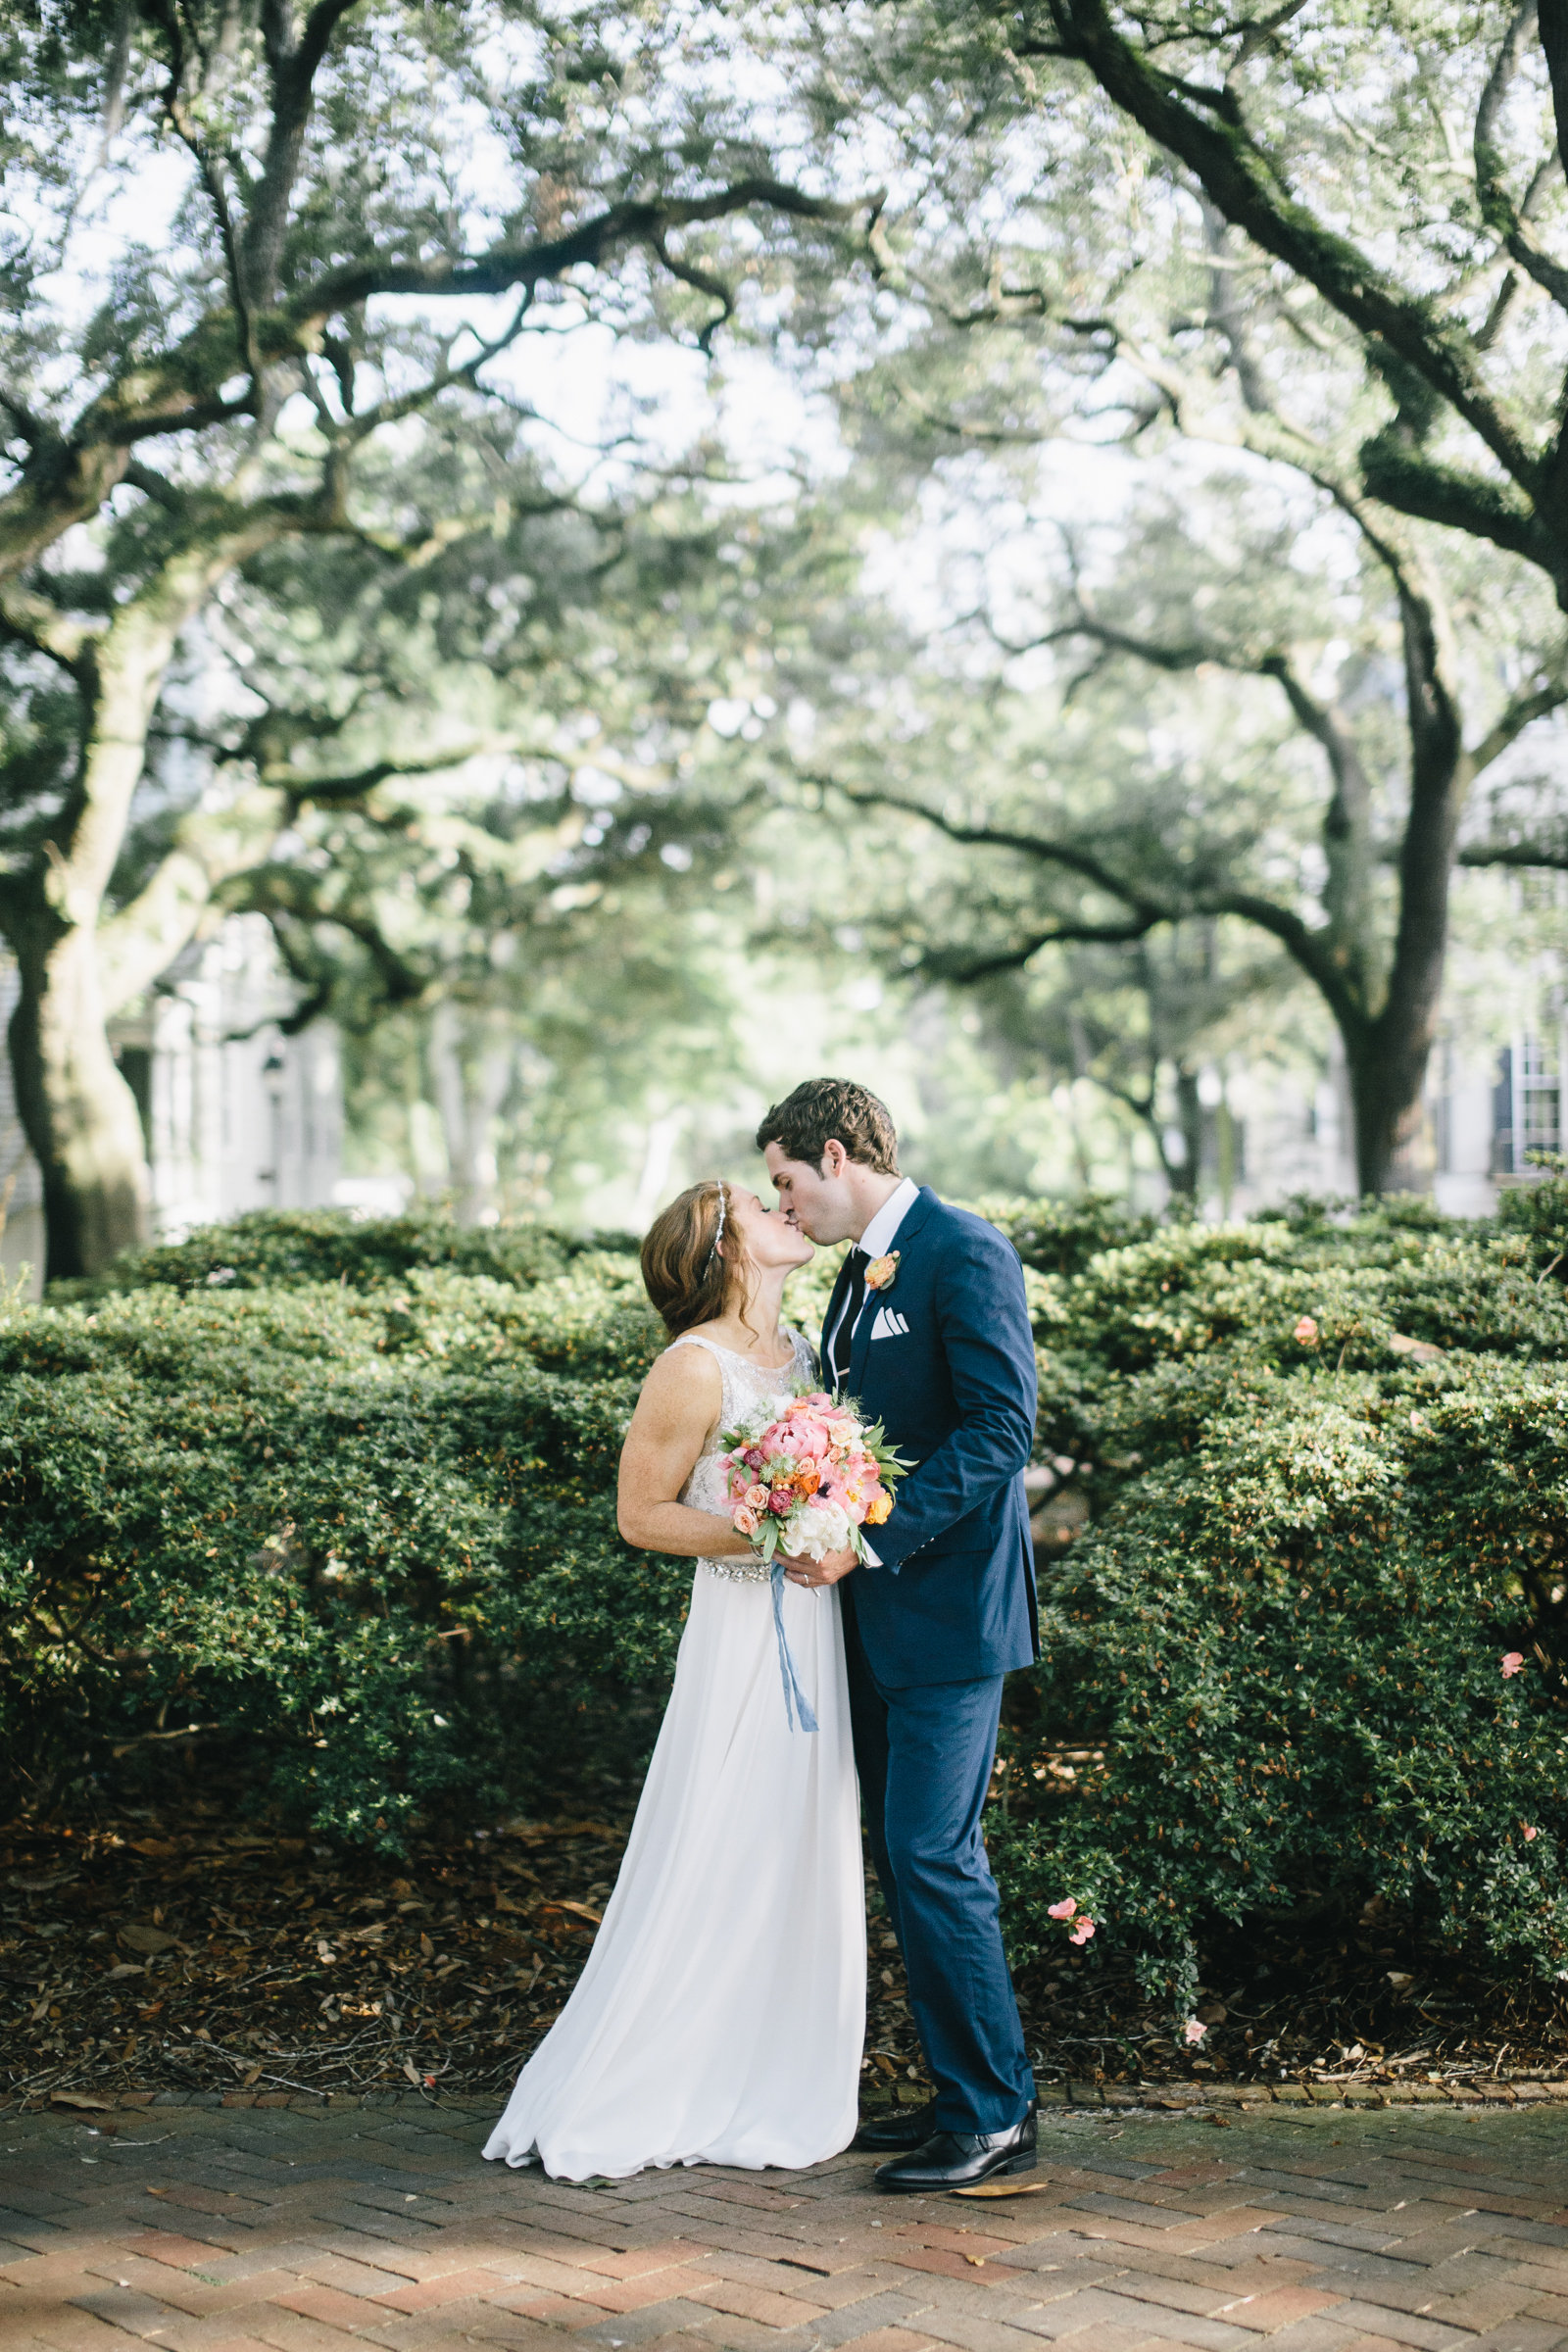 mackensey-alexander-photography-ivory-and-beau-bridal-boutique-from-this-day-forward-wedding-planning-sarah-seven-gwen-savannah-bridal-boutique-savannah-wedding-dresses-savannah-bridal-boutique-savannah-wedding-planner-savannah-weddings-43.jpg